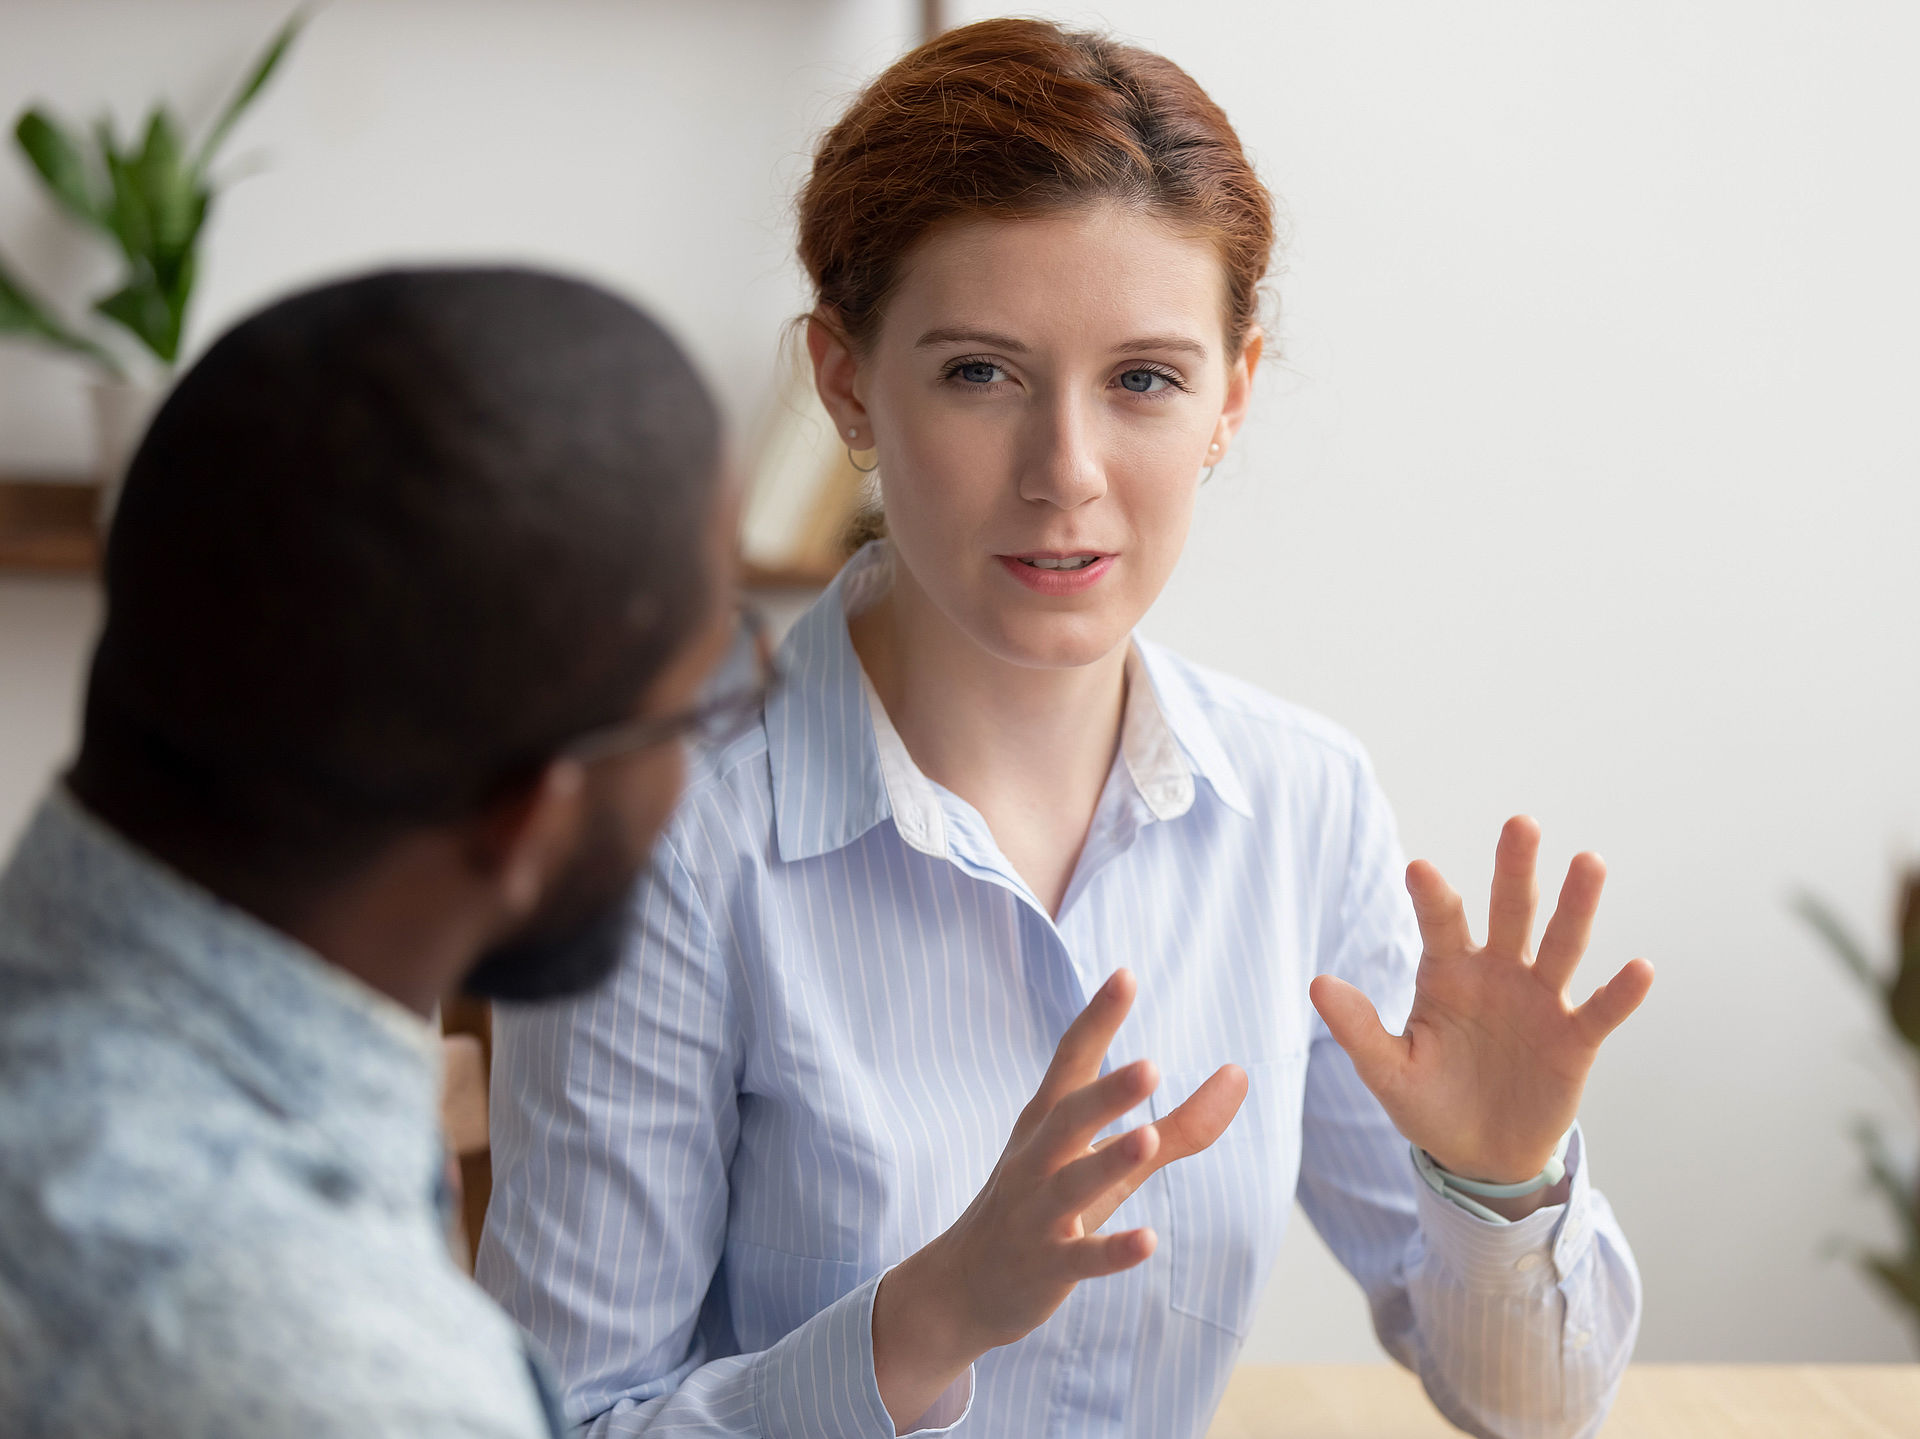 Woman advises male people seeking advice